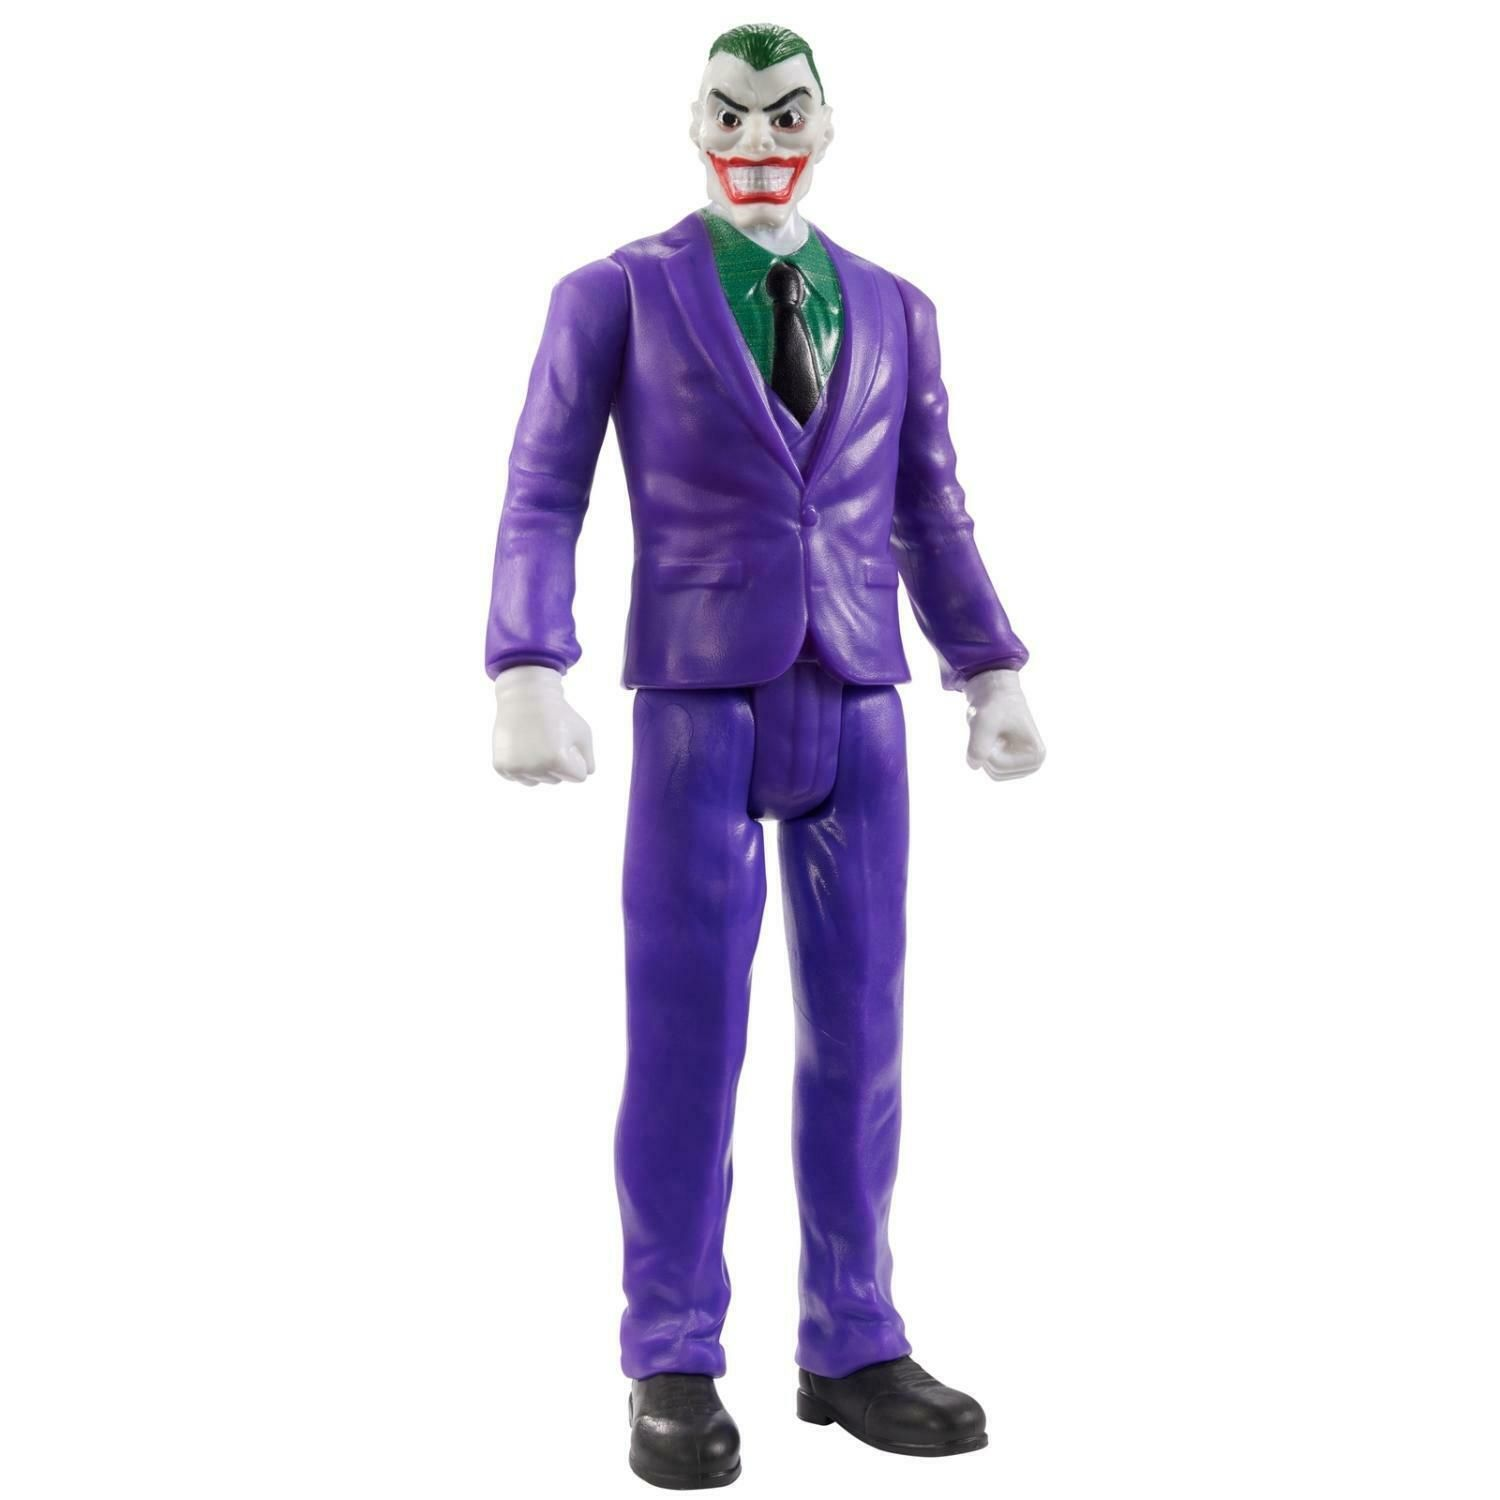 DC Comics Batman Missions The Joker Action Figure